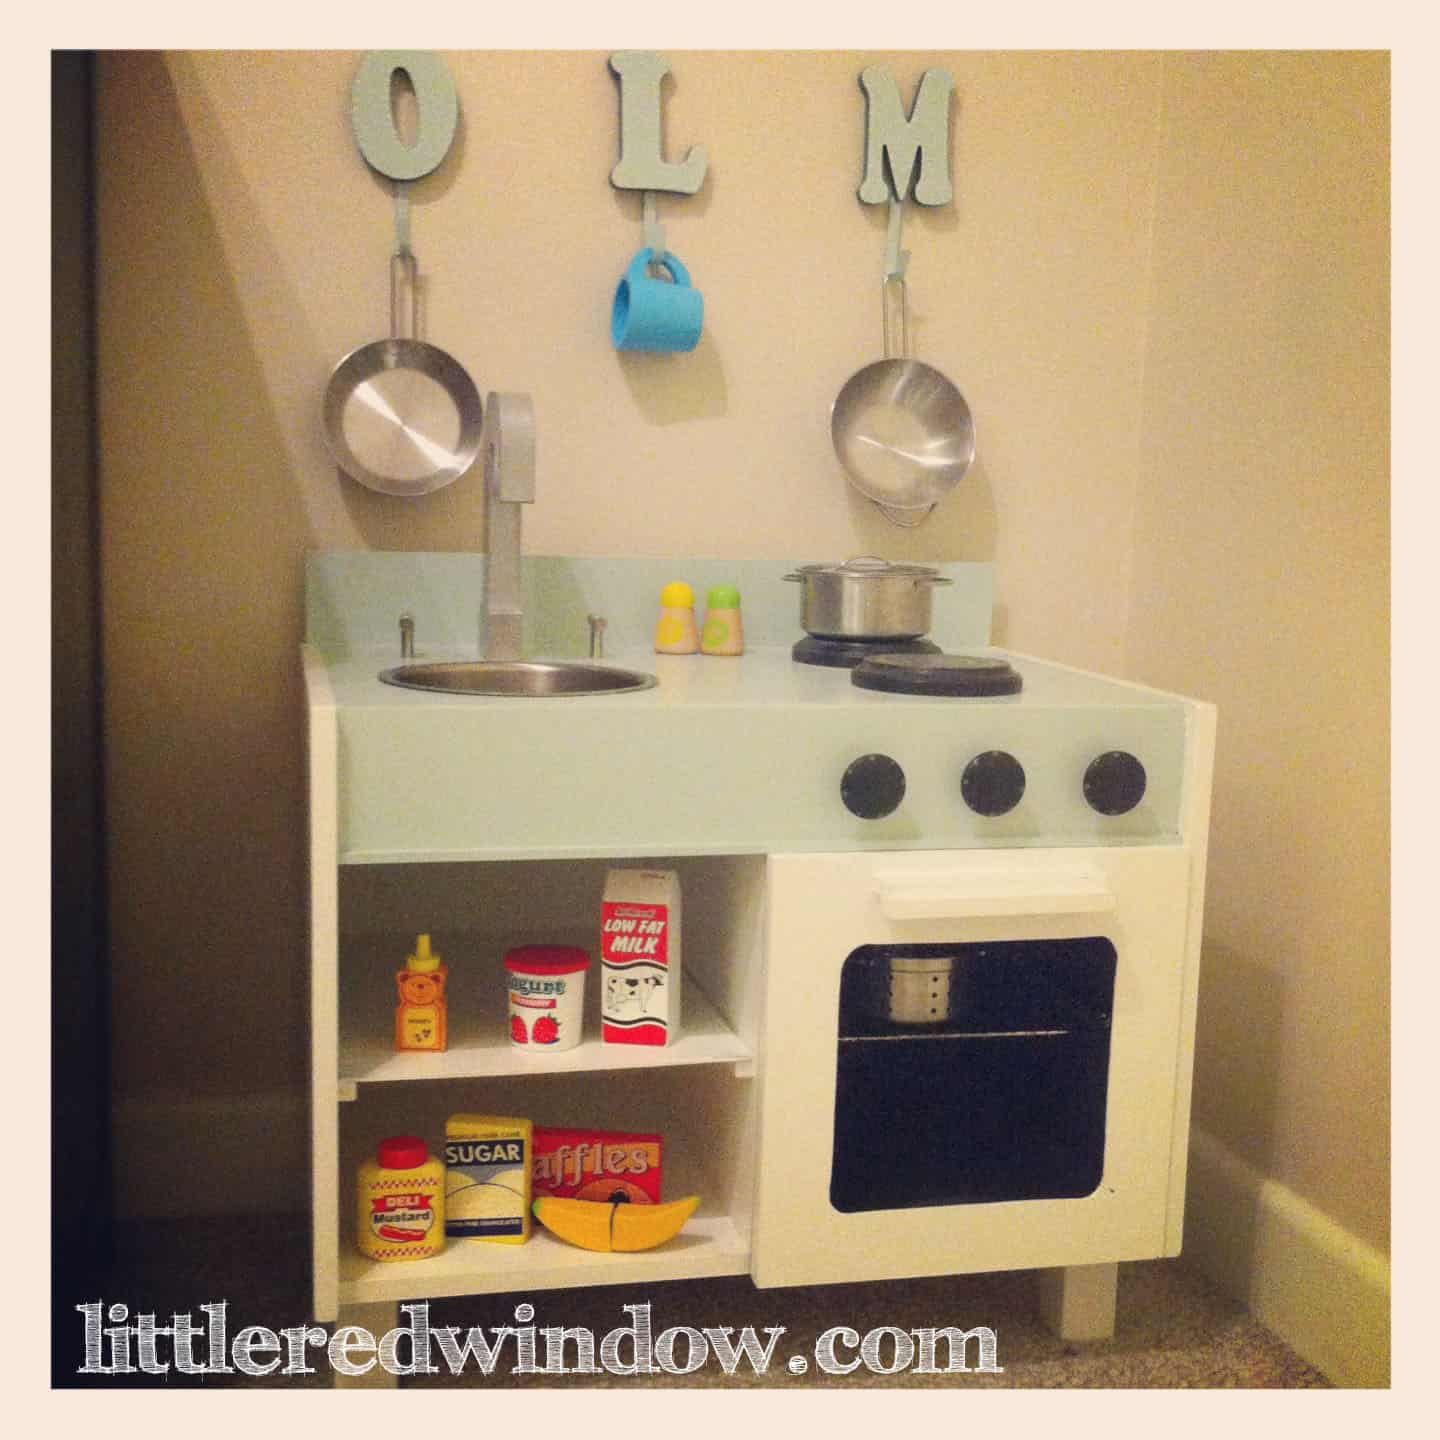 IKEA Hack Play Kitchen | Littleredwindow.com | Make An Adorable Play Kitchen  With Sink